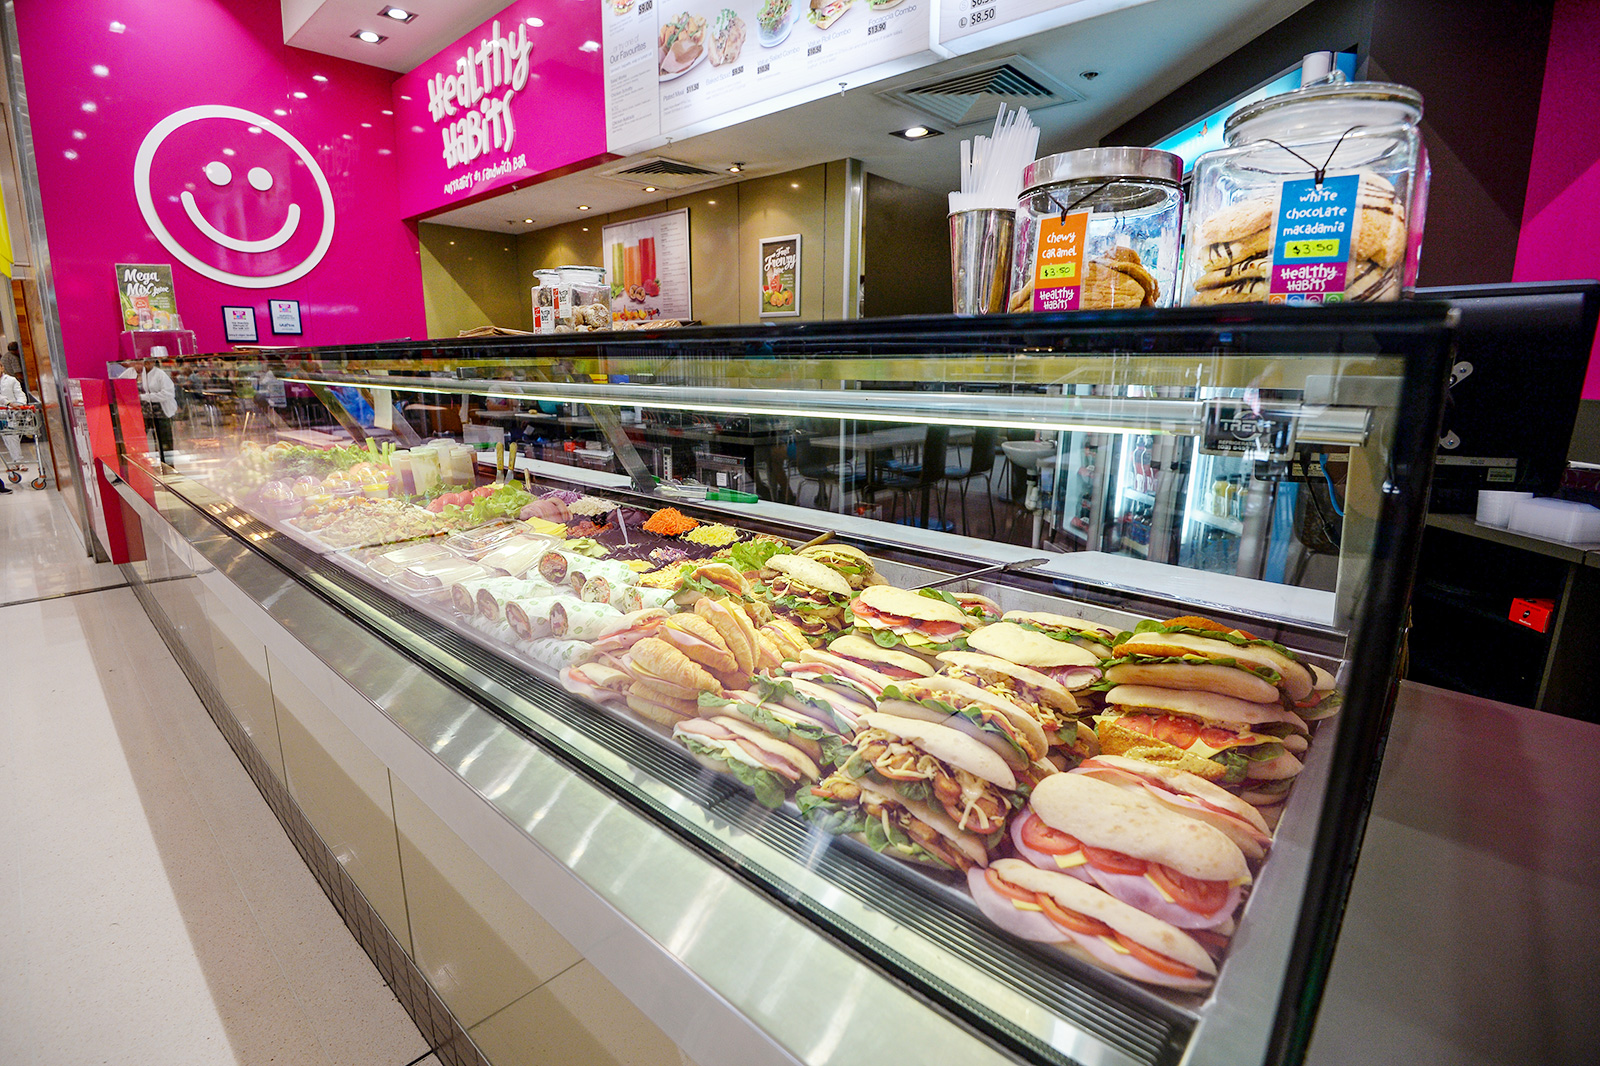 TAKE A WAY SANDWICH SHOP - HEALTHY HABITS - GRAFTON SHOPPING WORLD Reduced PRICE